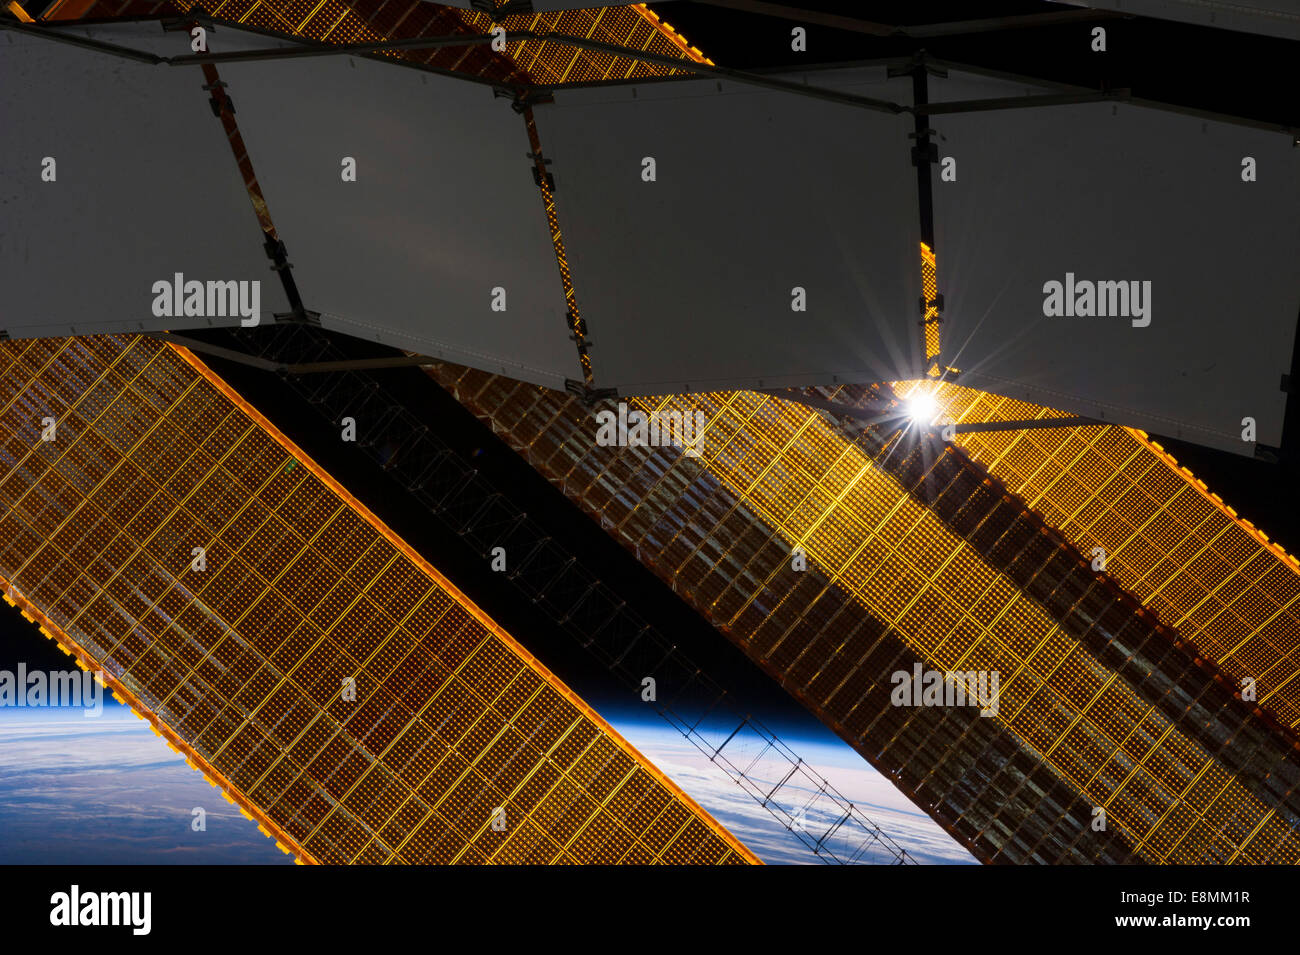 January 2, 2014 - The sun shines through a truss-based radiator panel and a primary solar array panel on the Earth - Stock Image